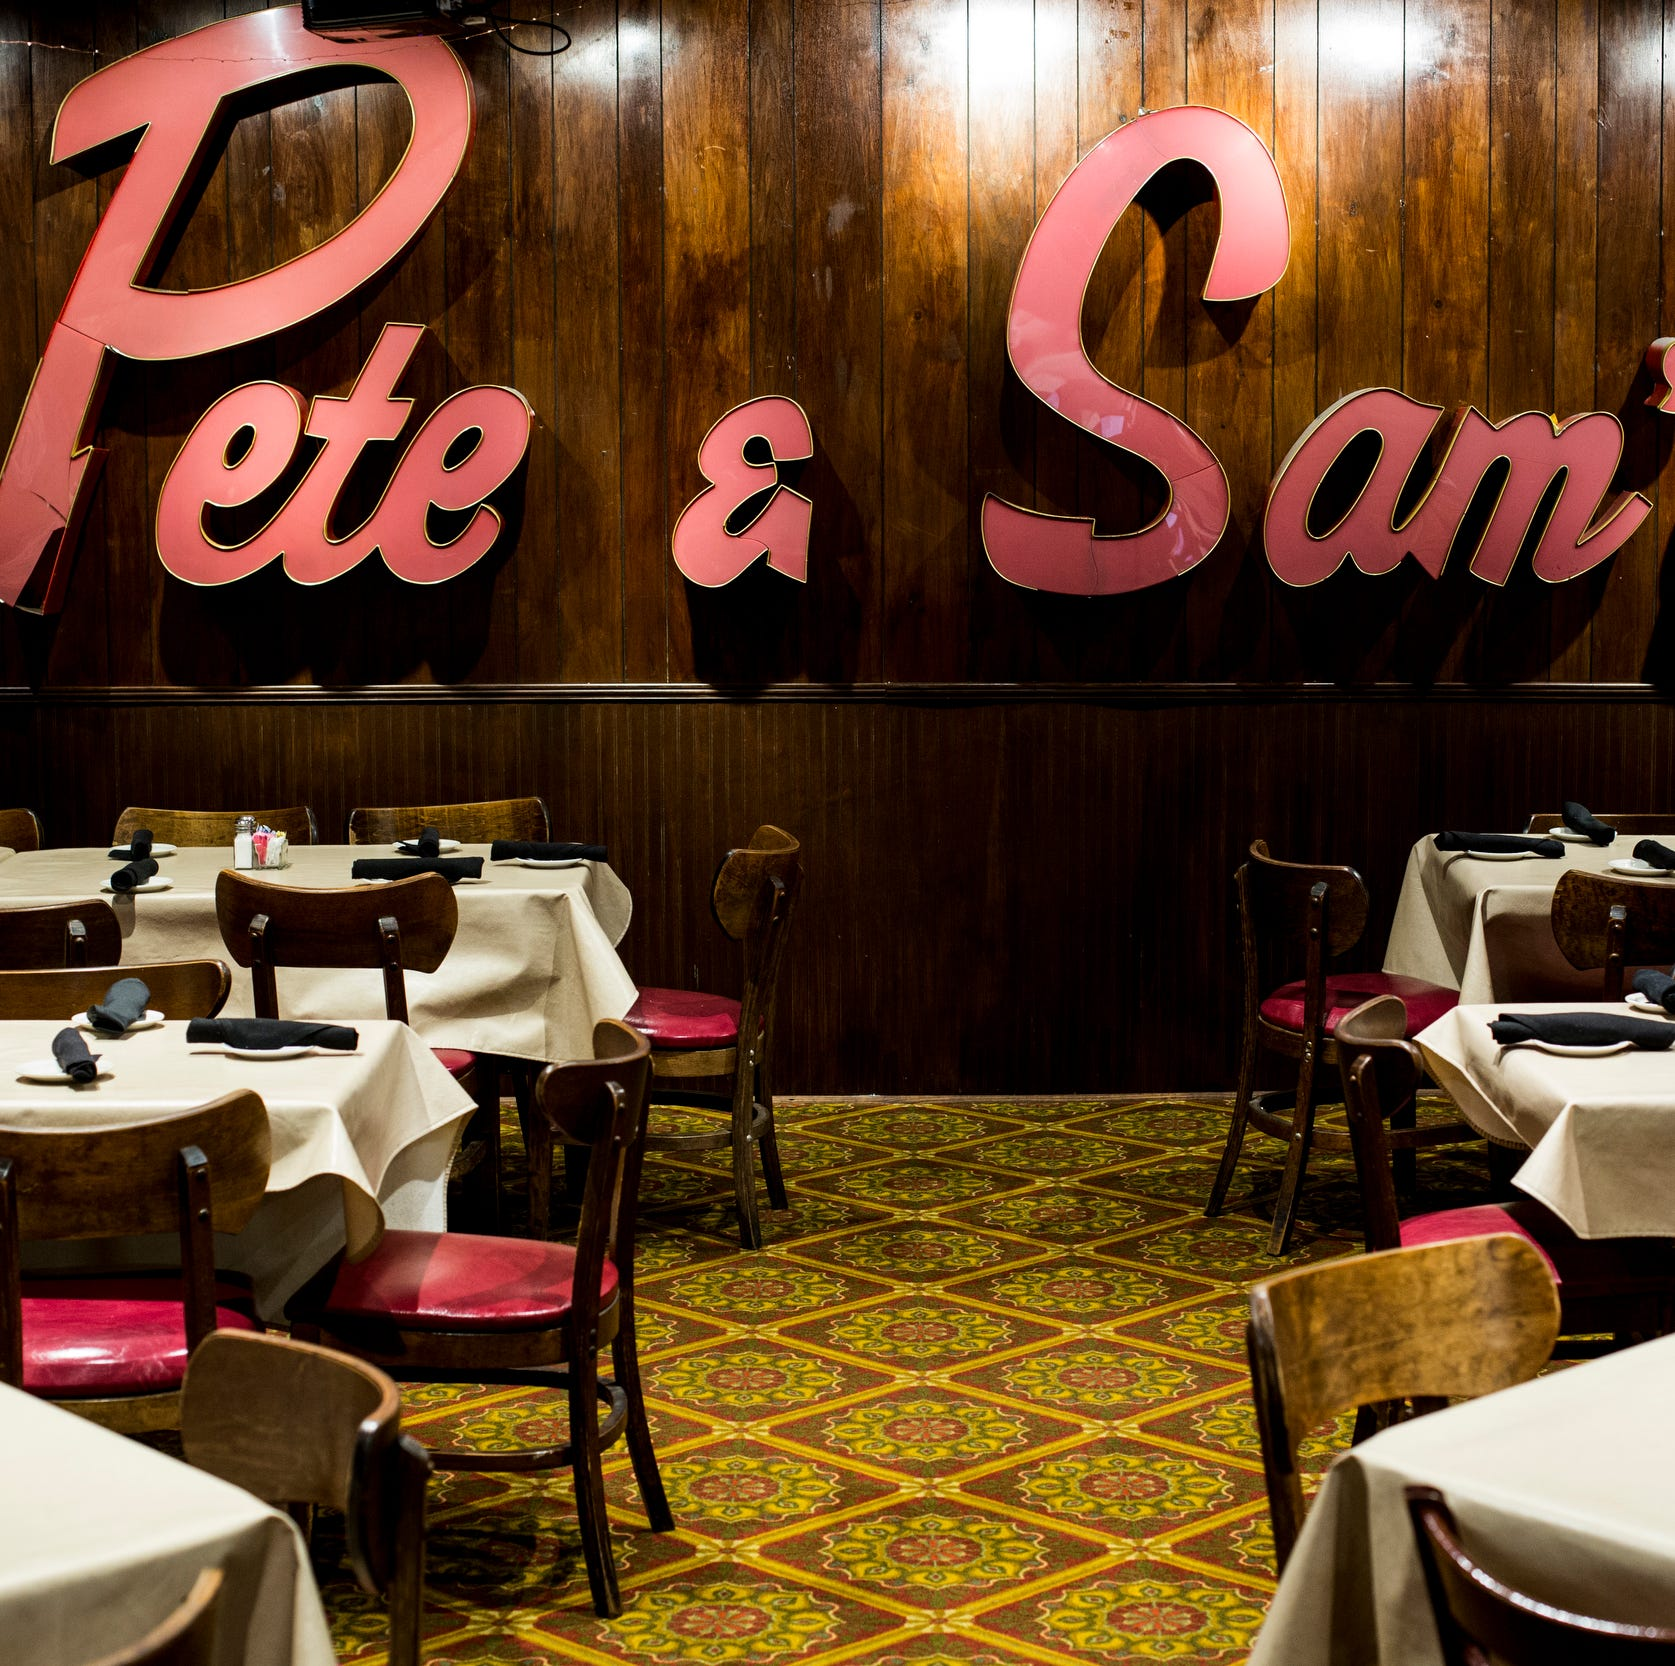 One year since reopening after devastating fire, 71-year-old Pete & Sam's is busier than ever